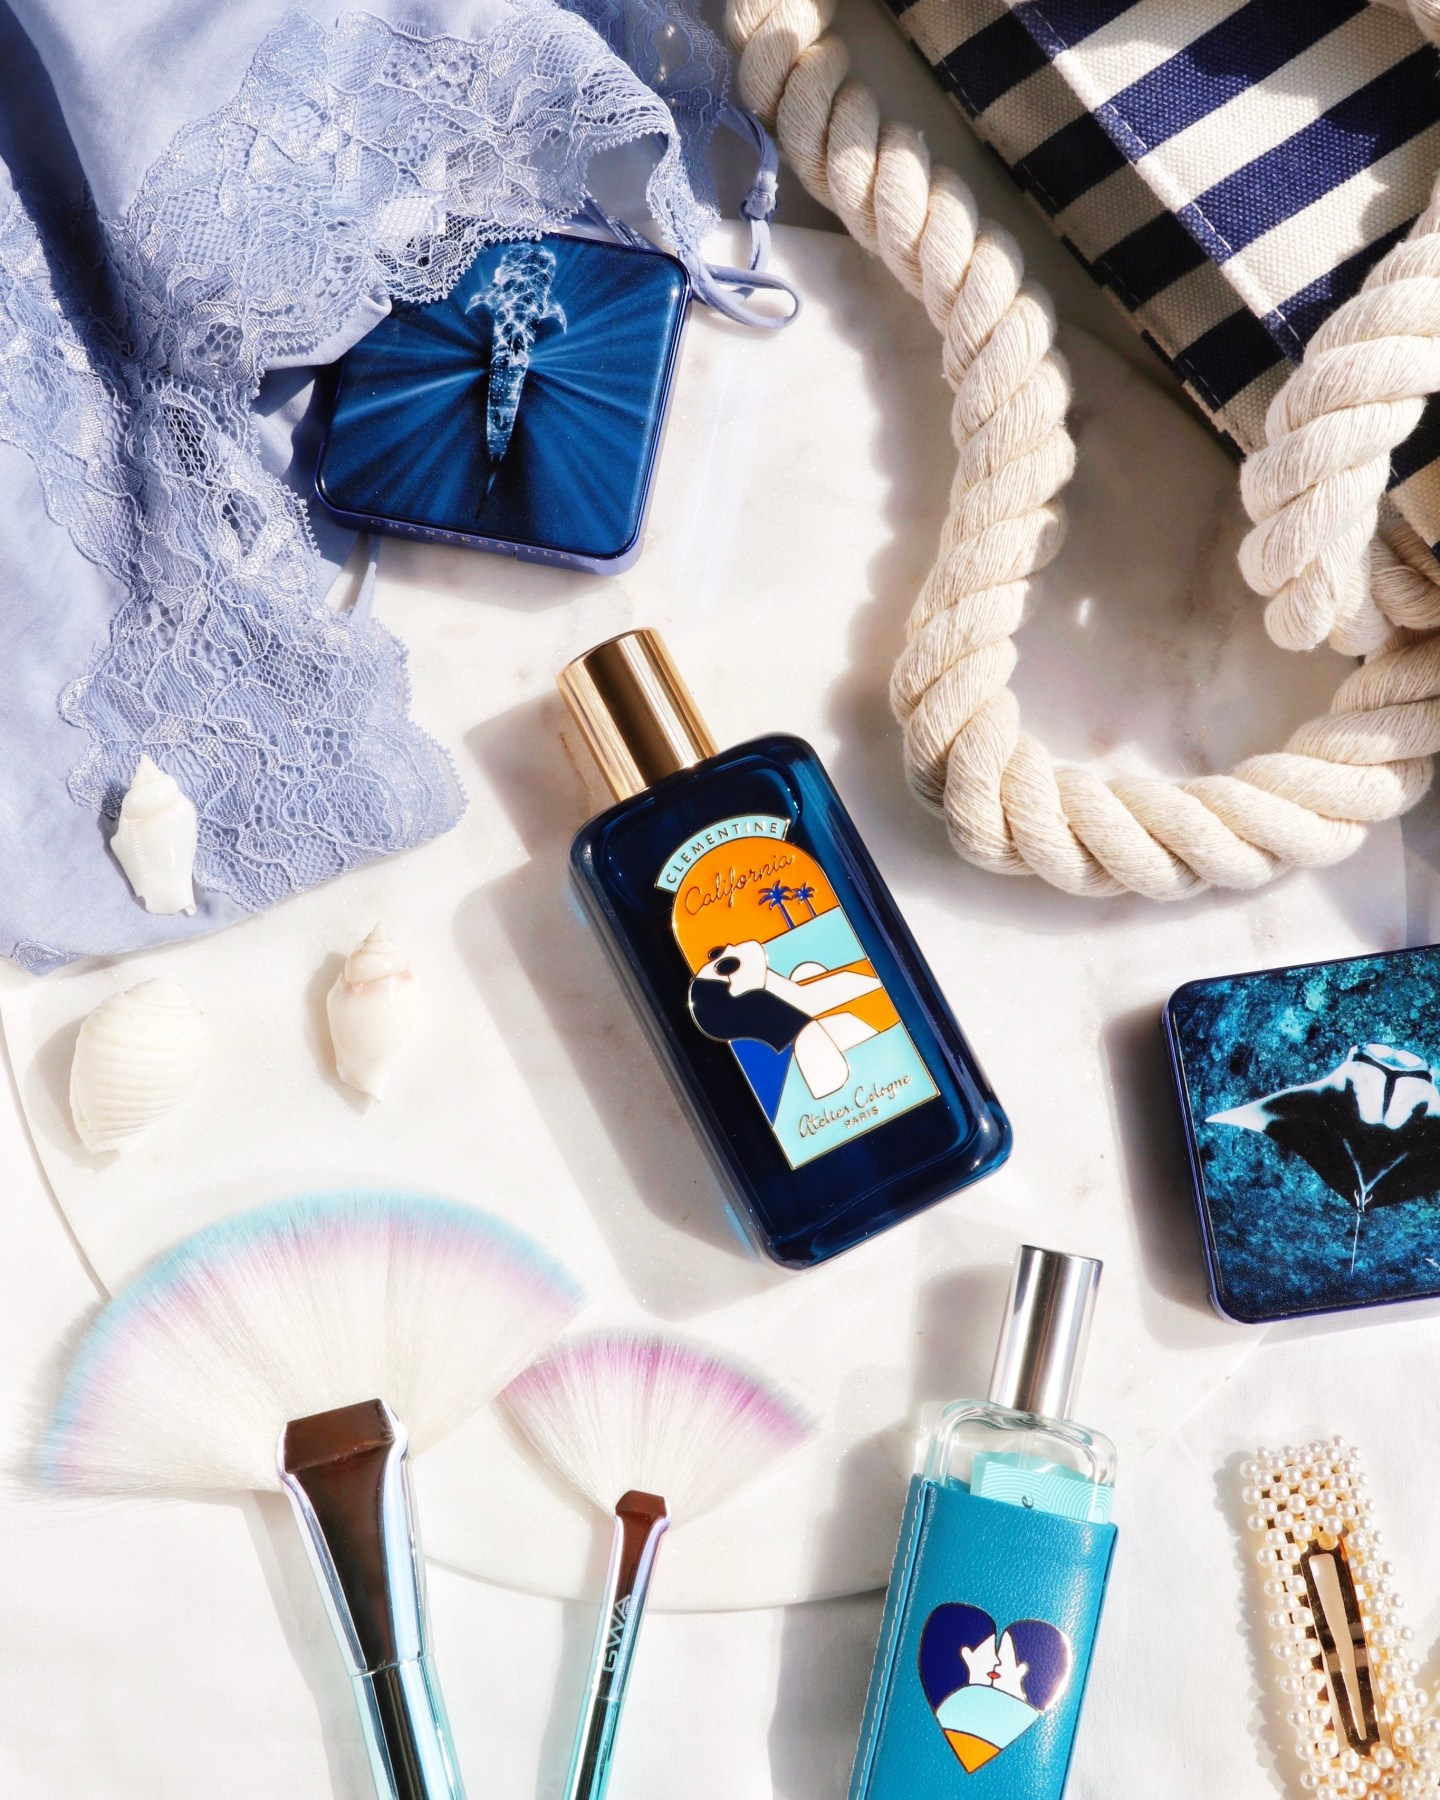 Atelier Cologne X Quentin Monge: Clémentine California Limited Edition Summer 2020